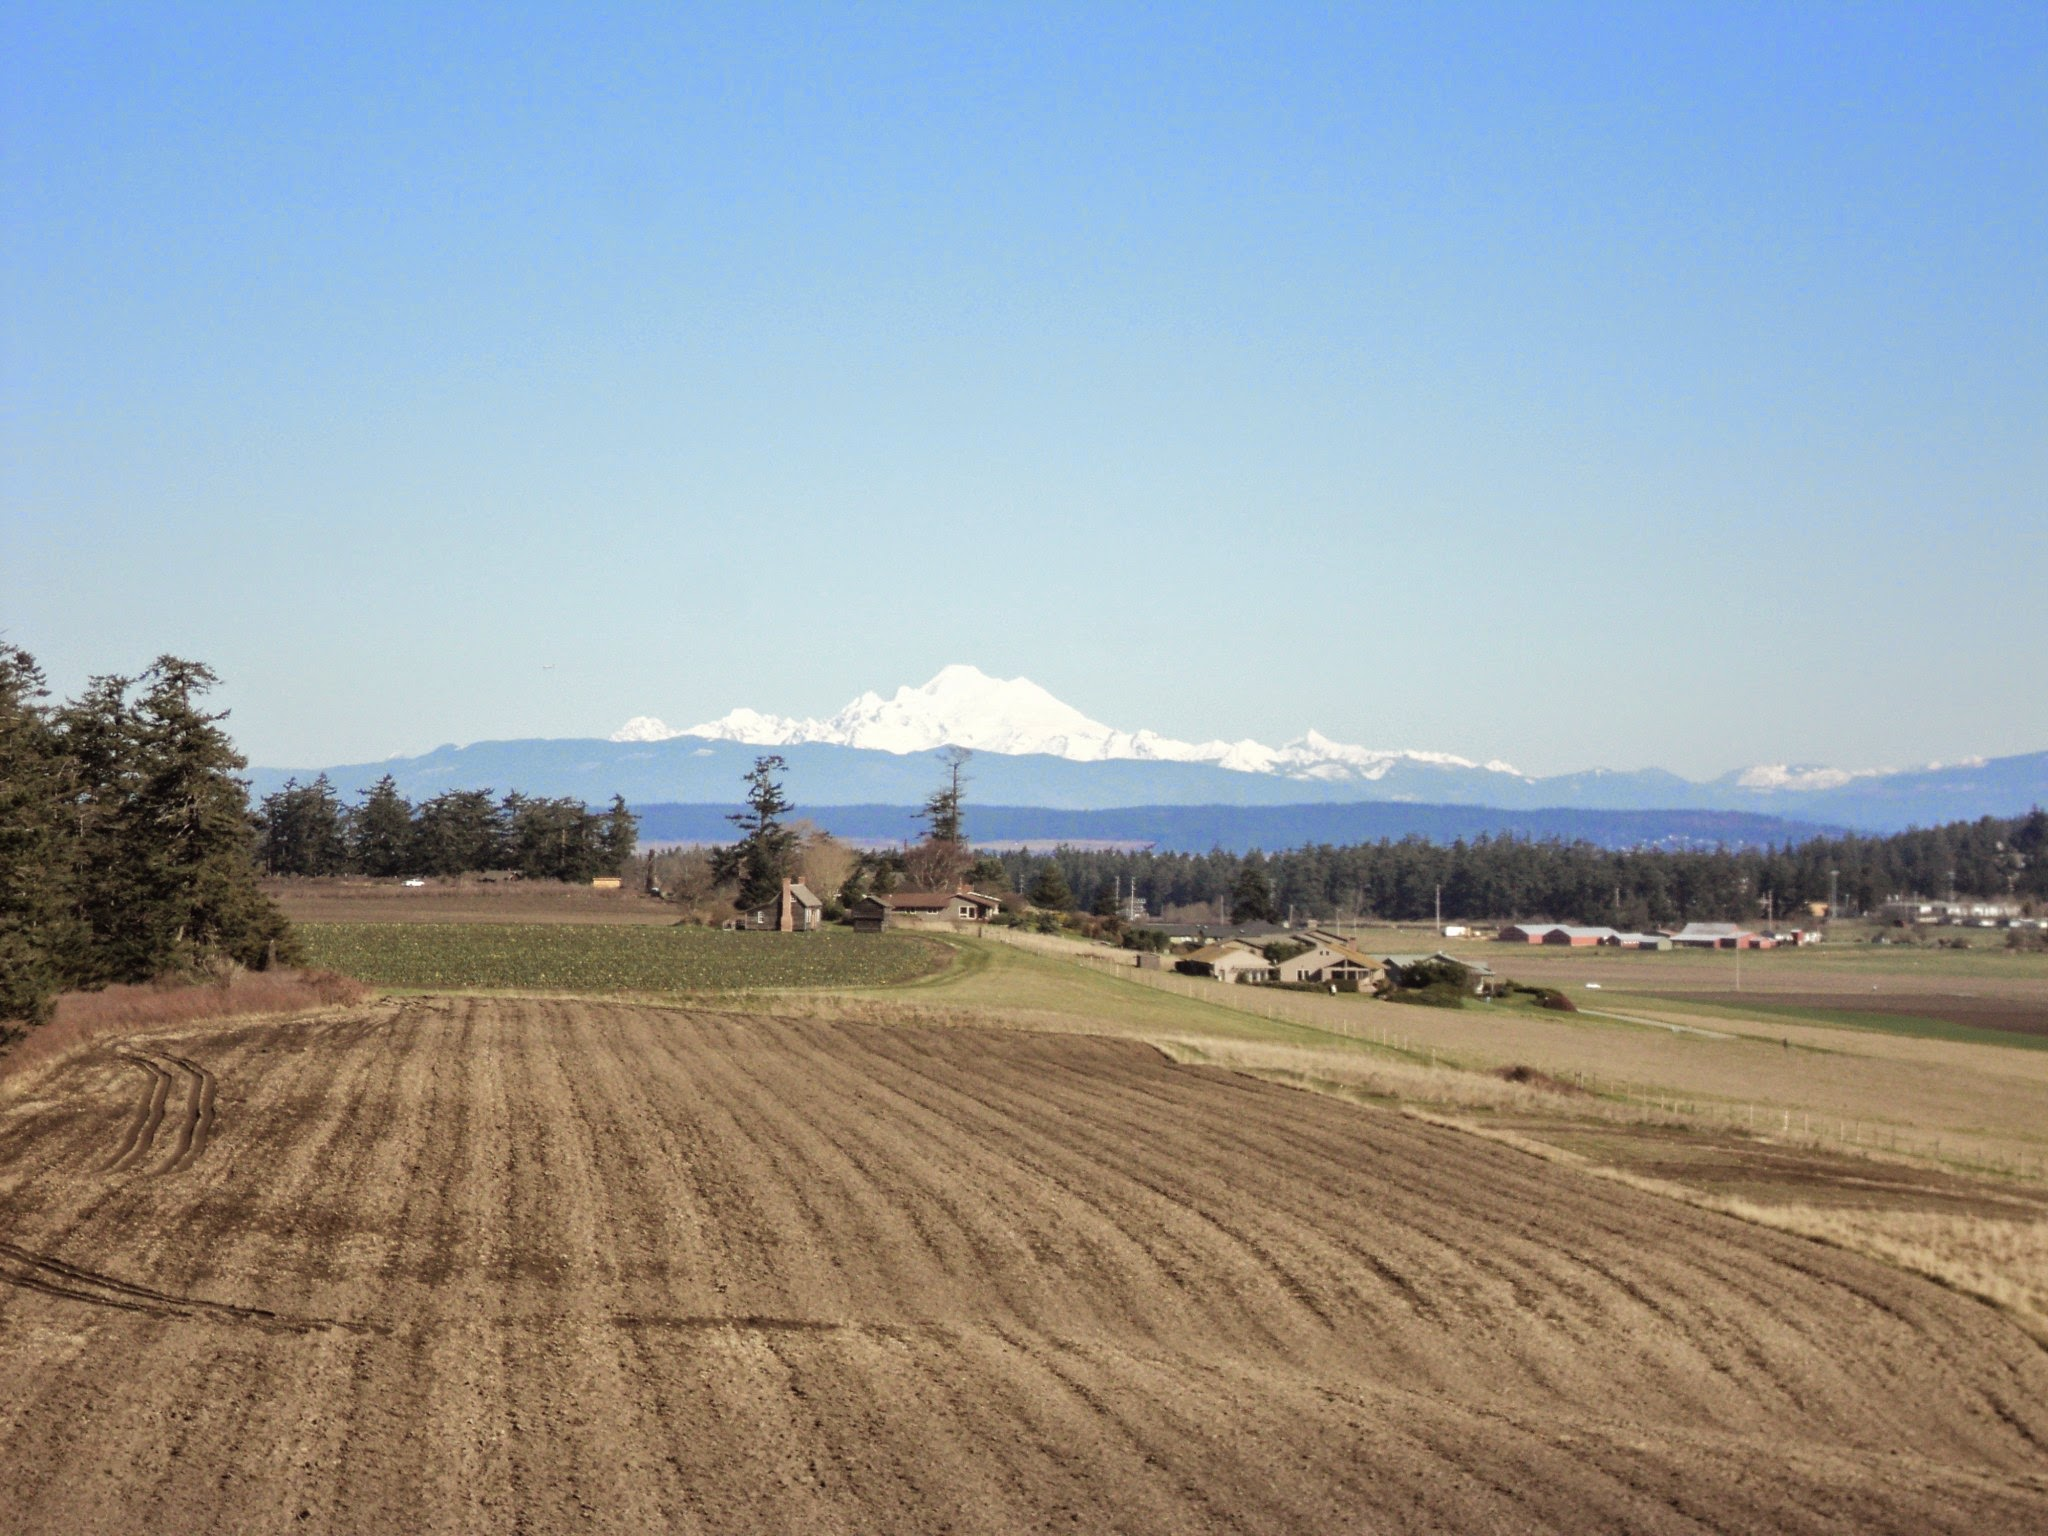 A brown field waiting to be planted in the foreground, with some buildings and a large snow covered mountain in the distance